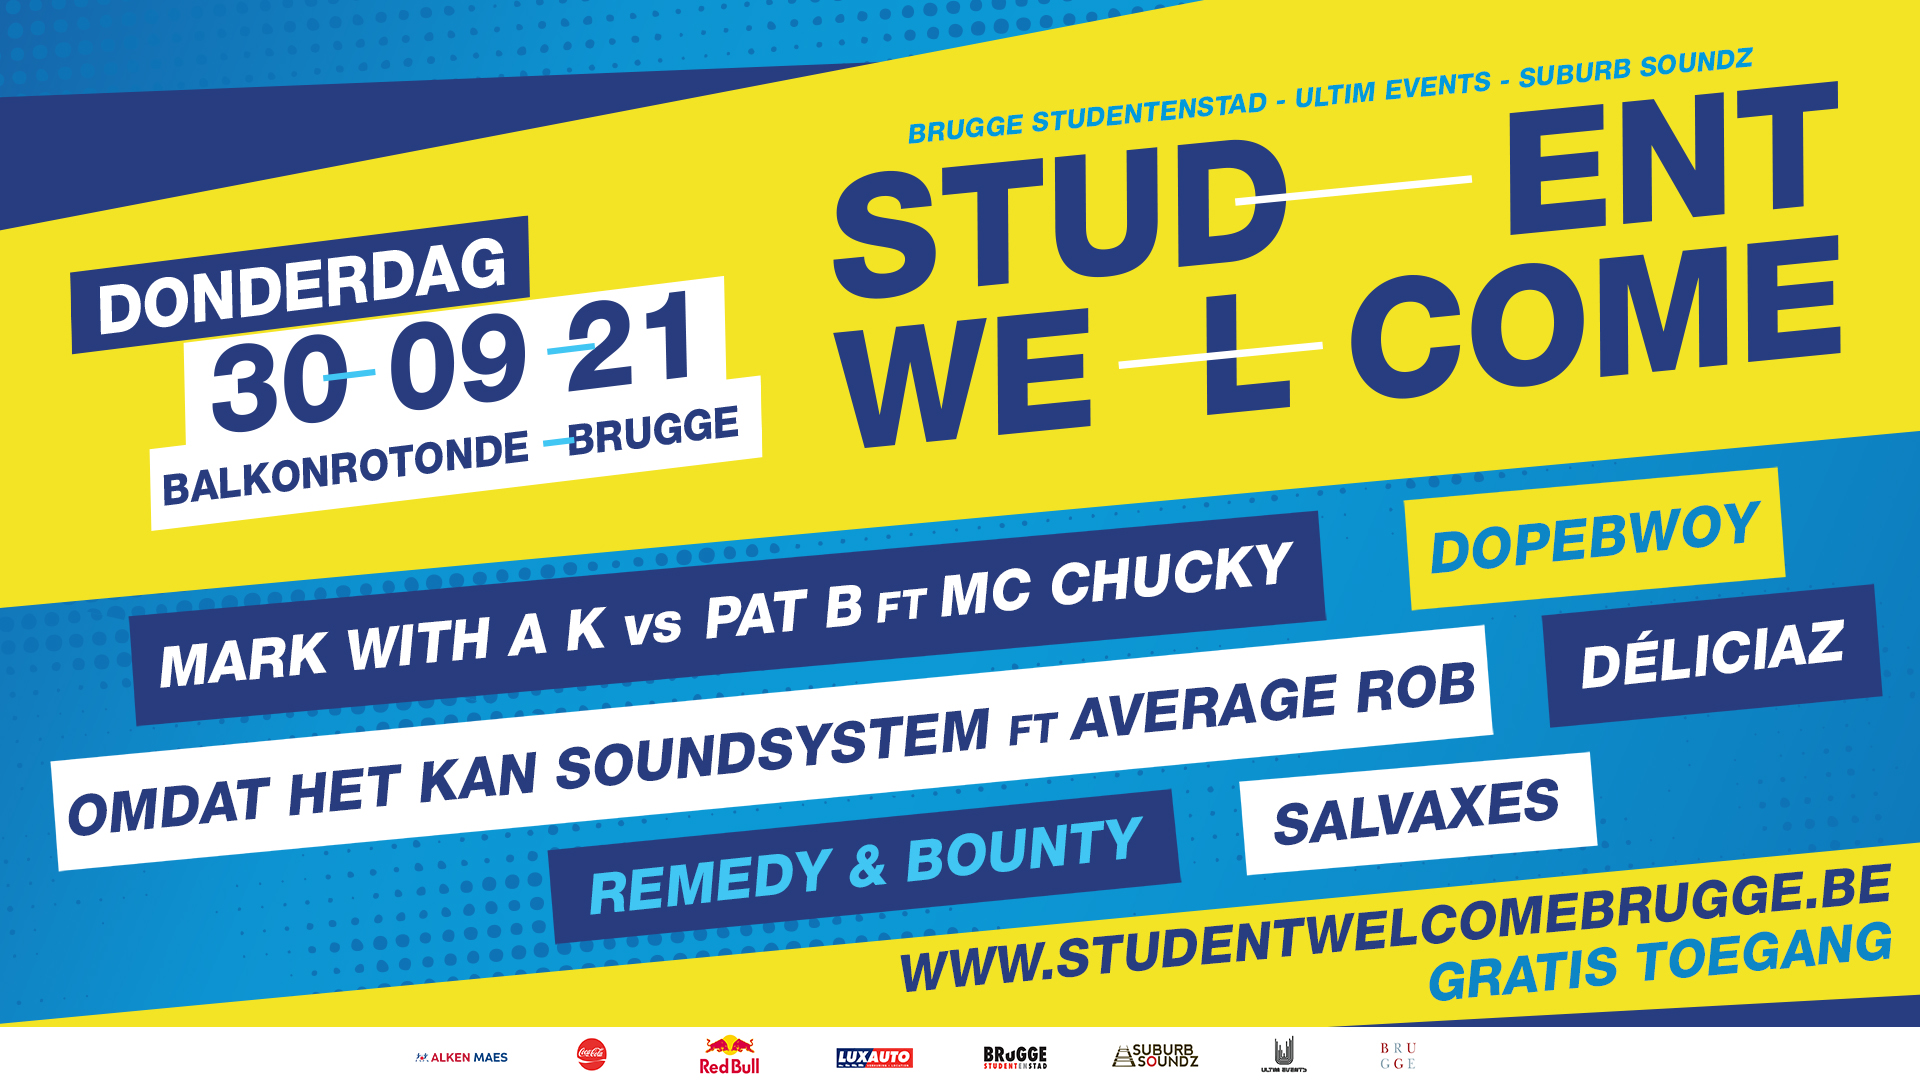 Student Welcome Brugge - 26.09